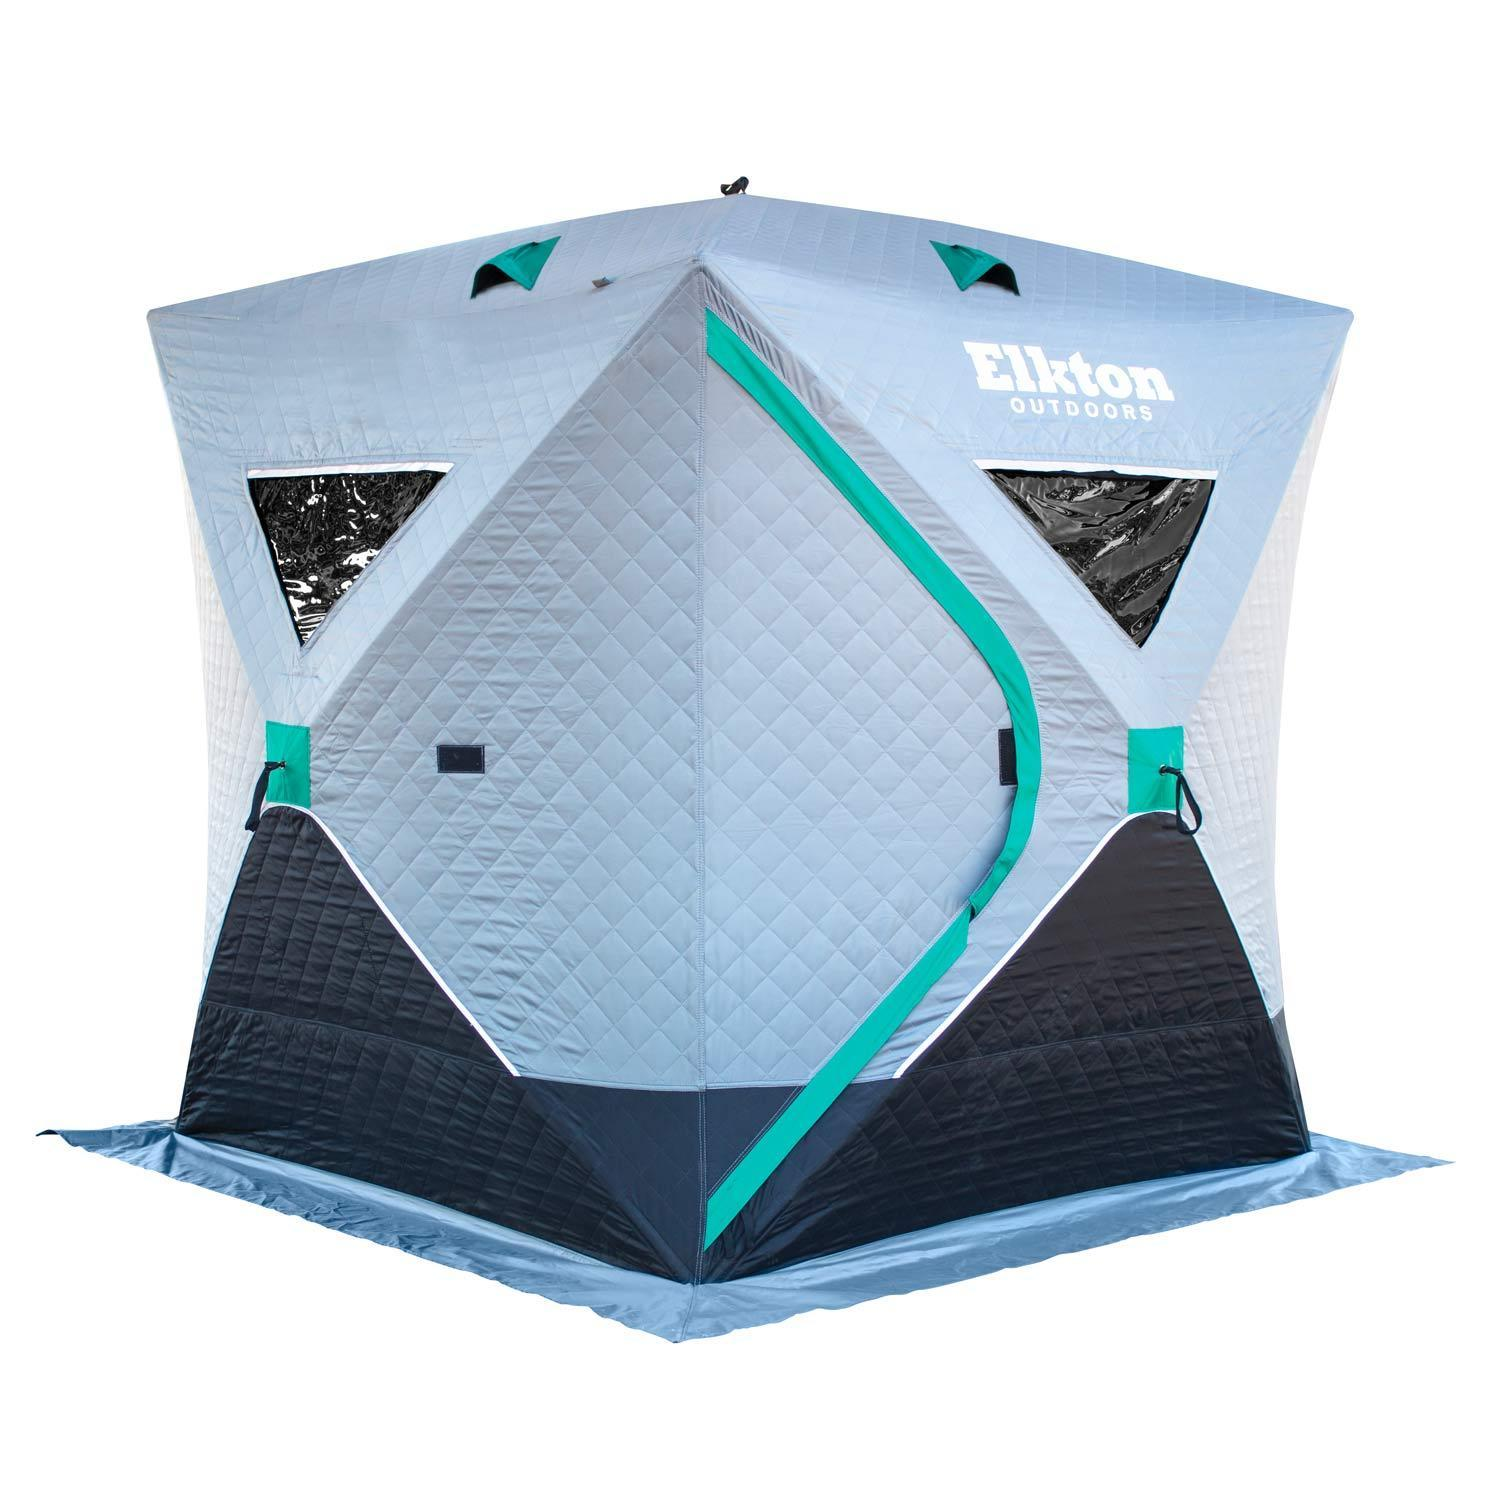 Insulated Premium Portable 3-Person Ice Fishing Tent With